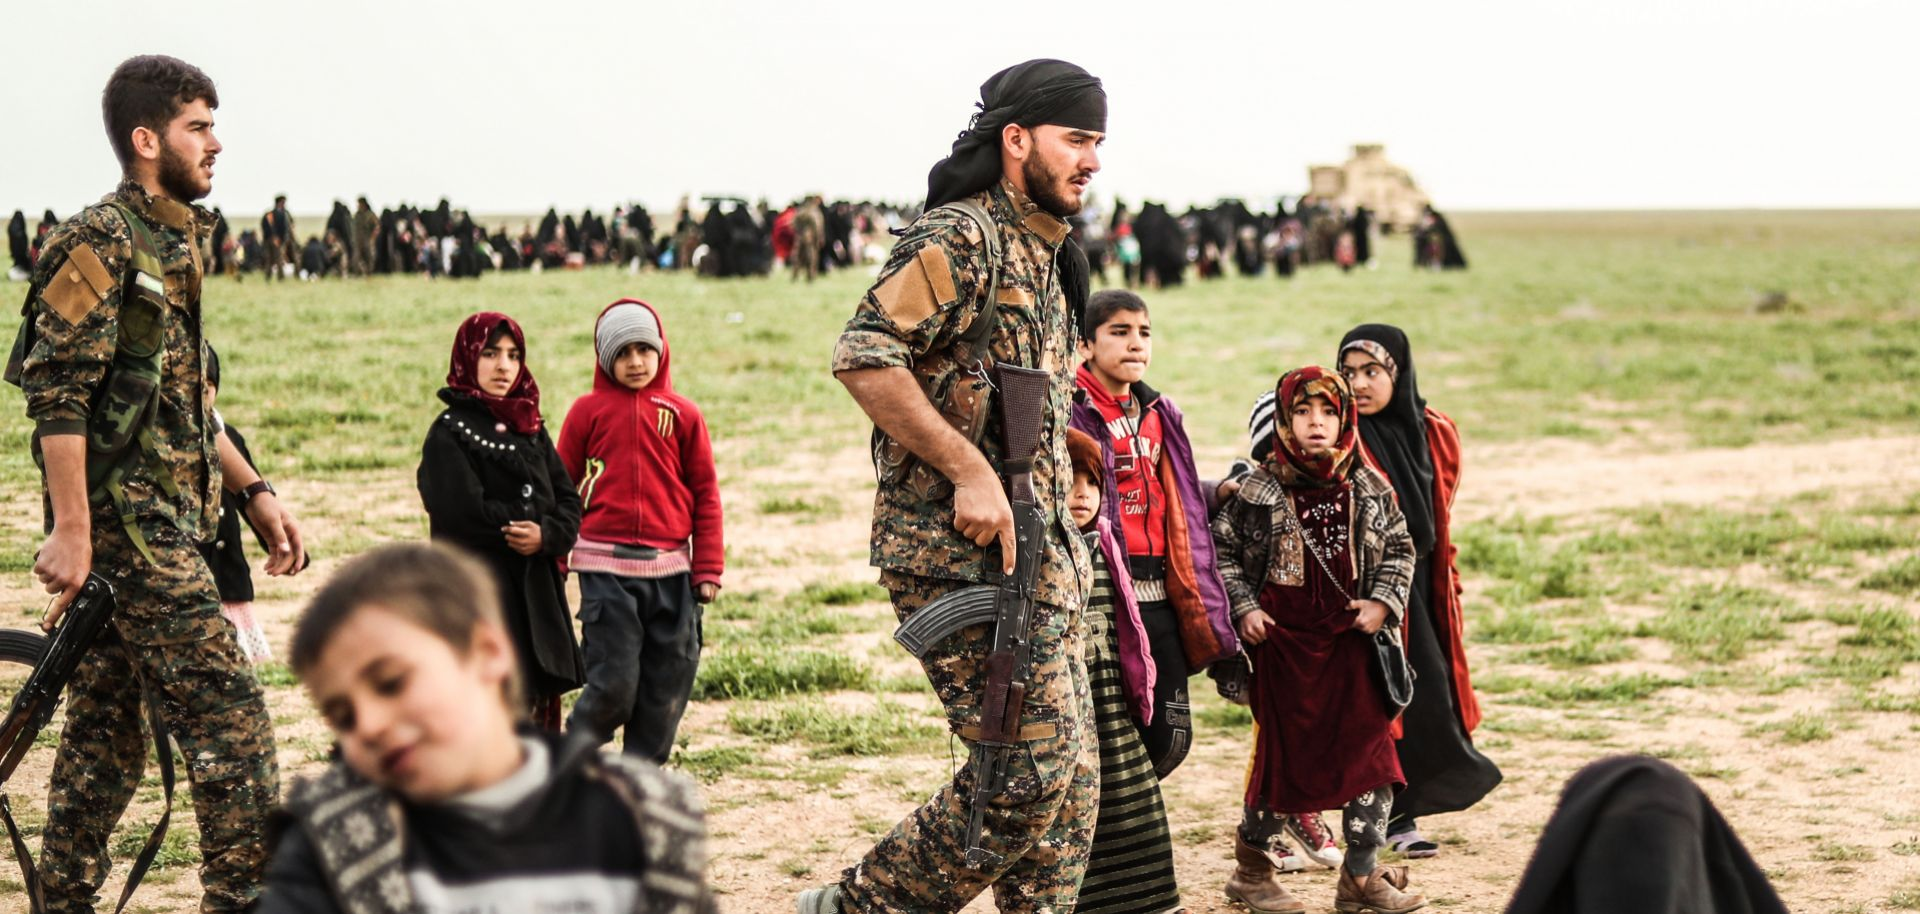 Fighters with the Syrian Democratic Forces walk past civilians at a screening area for evacuees from the Islamic State's embattled holdout in Baghouz, Syria, on Feb. 26, 2019.